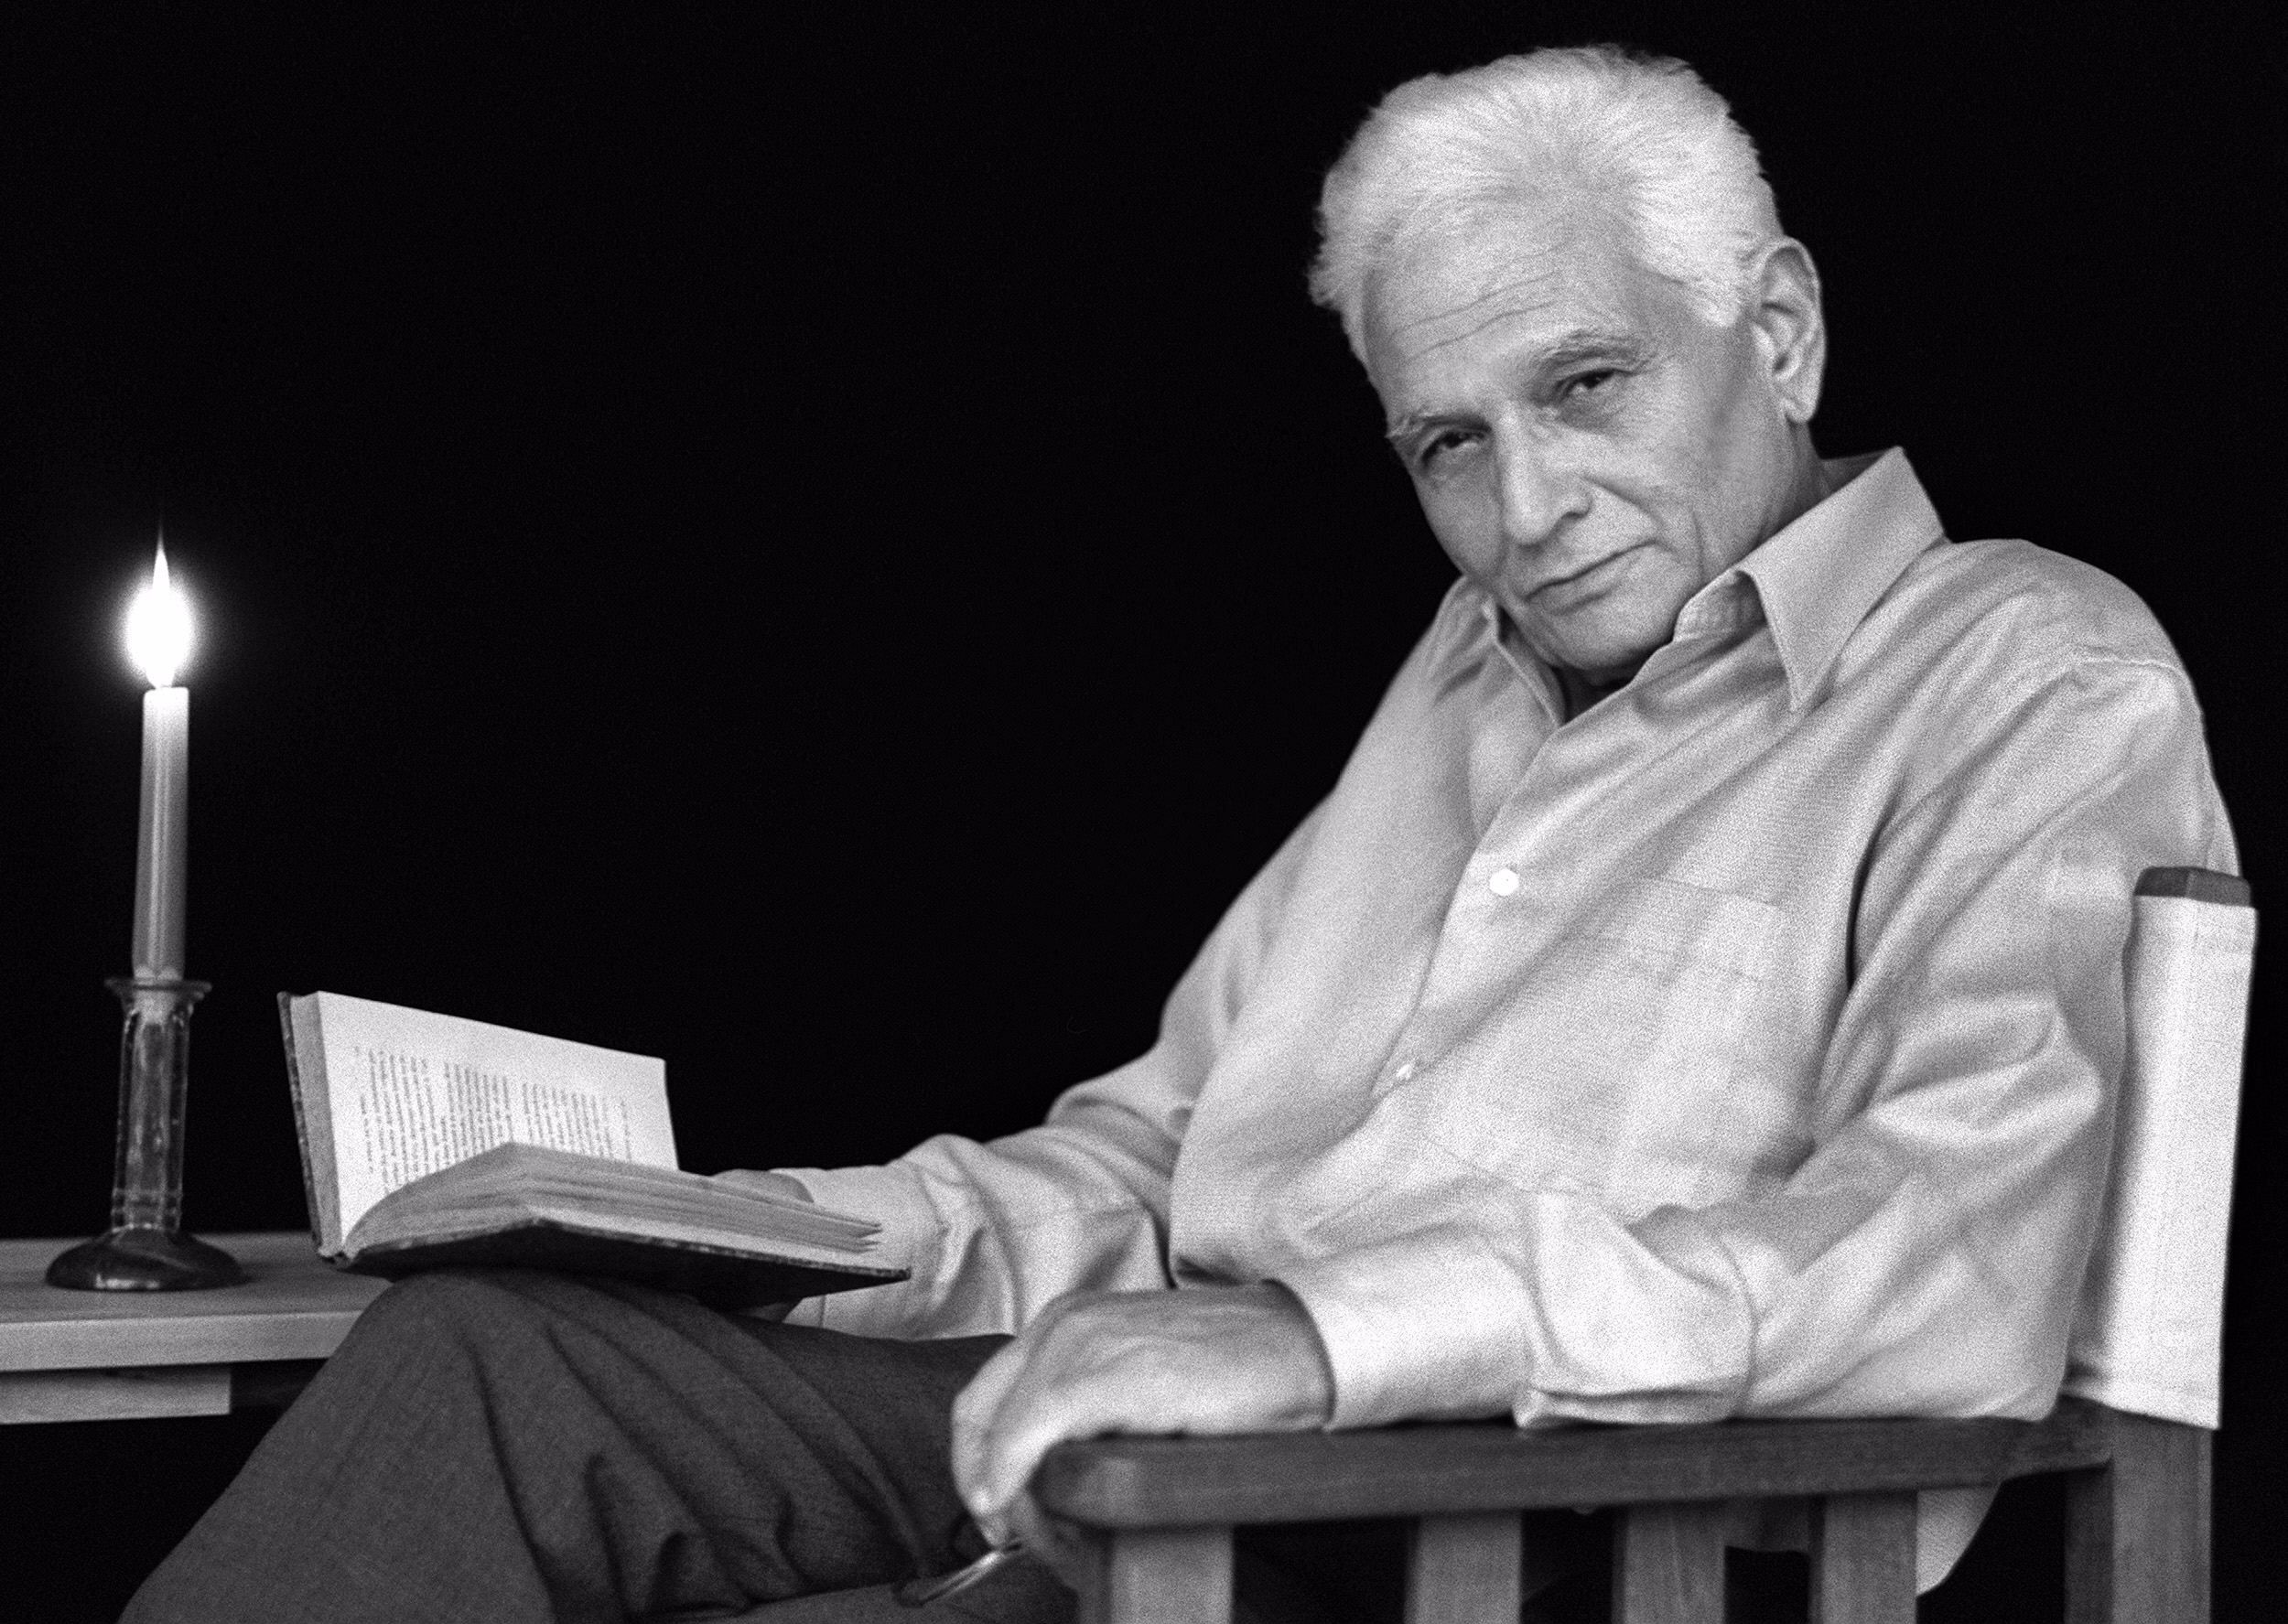 Jacques Derrida & Ornette Coleman – A Match Made In Heaven